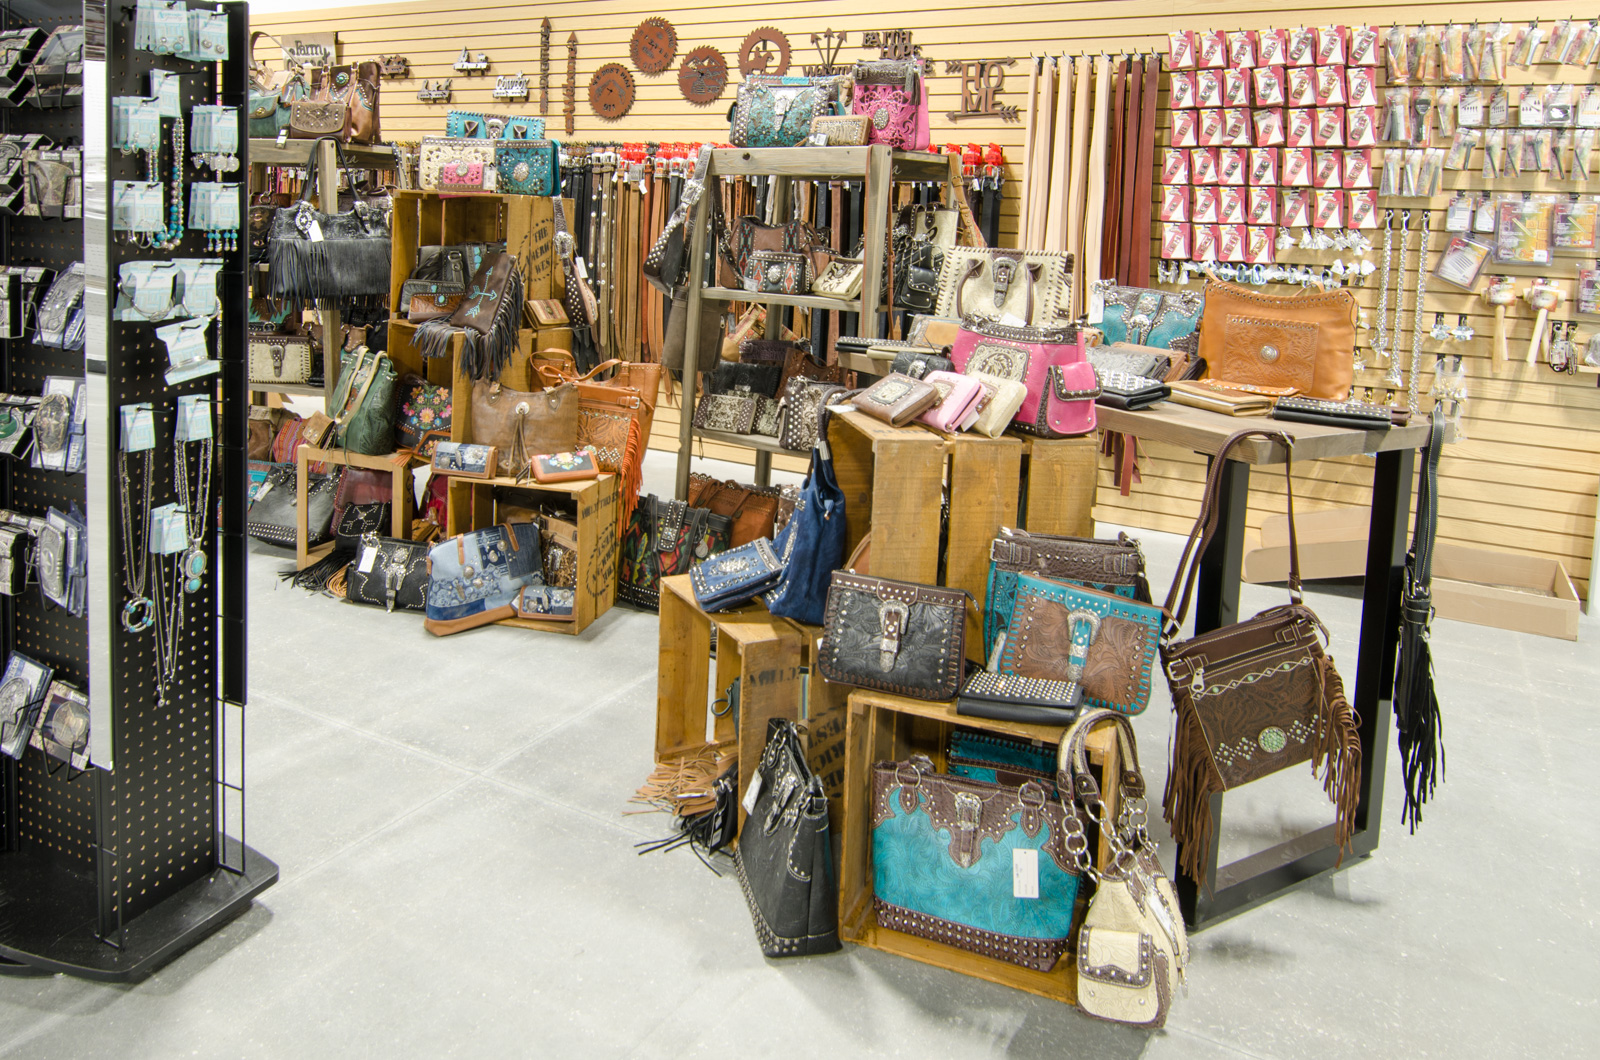 Western purses and accessories